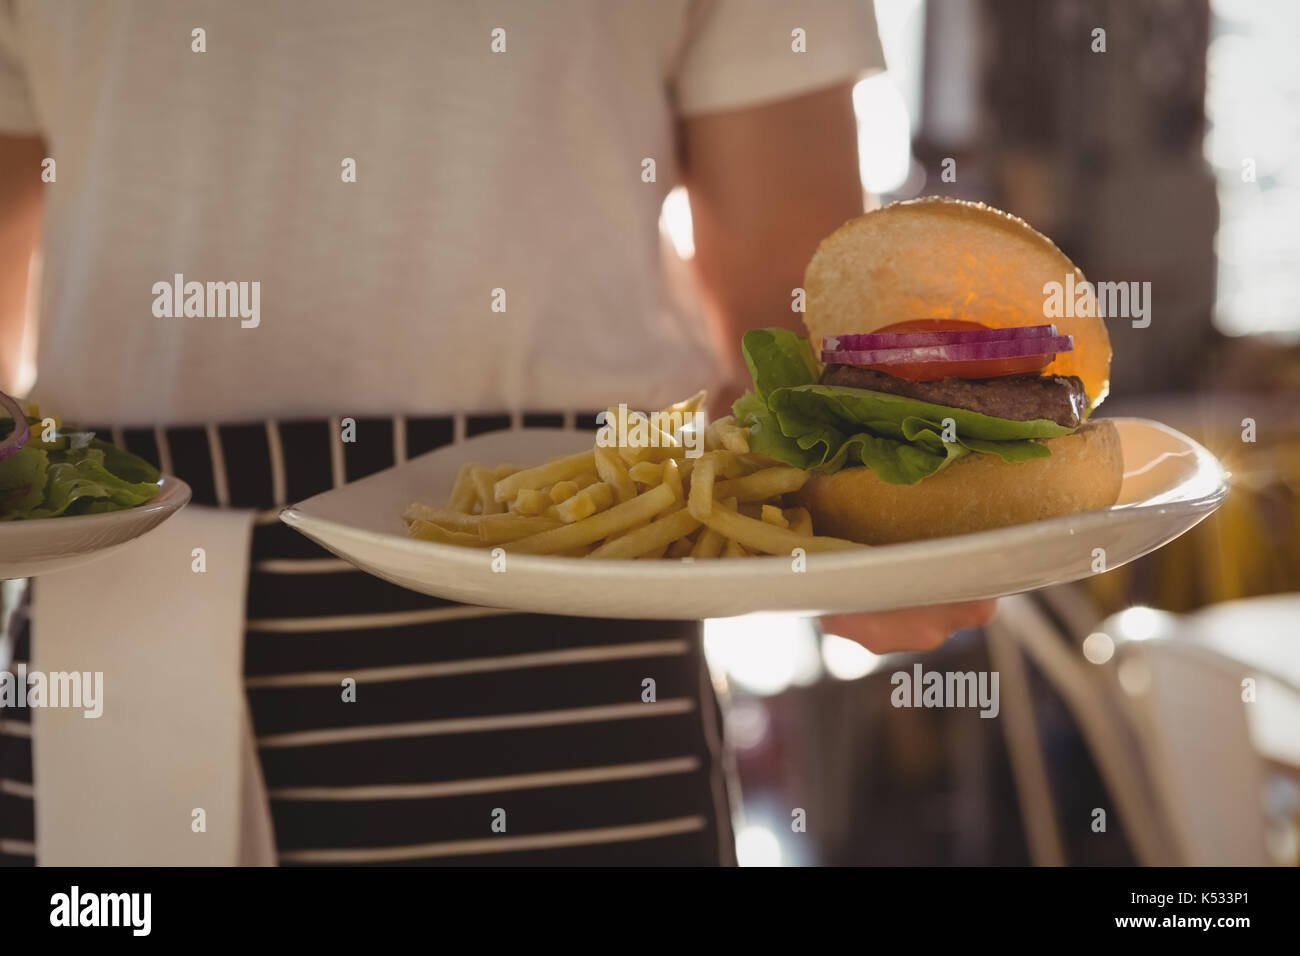 Mid section of waiter holding plate with burger and French fries at cafe - Stock Image